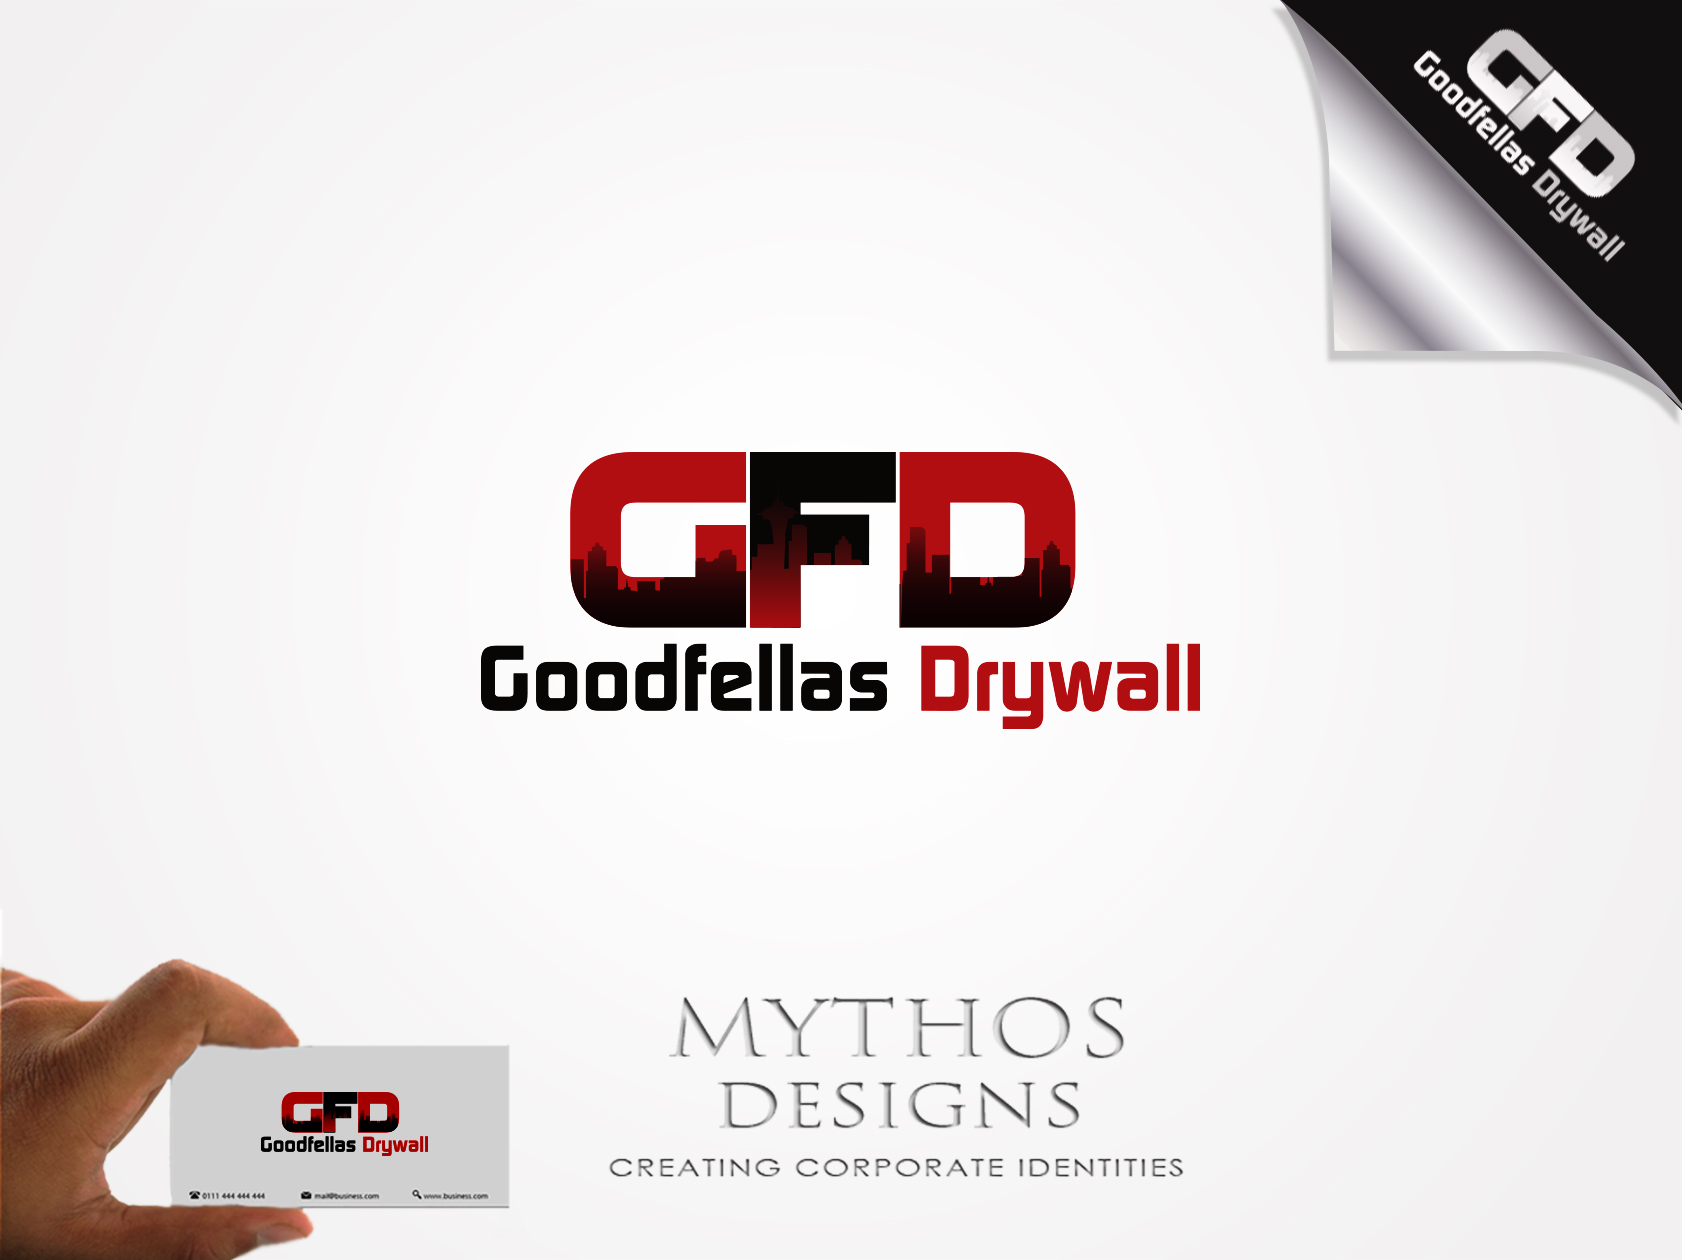 Logo Design by Mythos Designs - Entry No. 110 in the Logo Design Contest Creative Logo Design for Goodfellas Drywall.